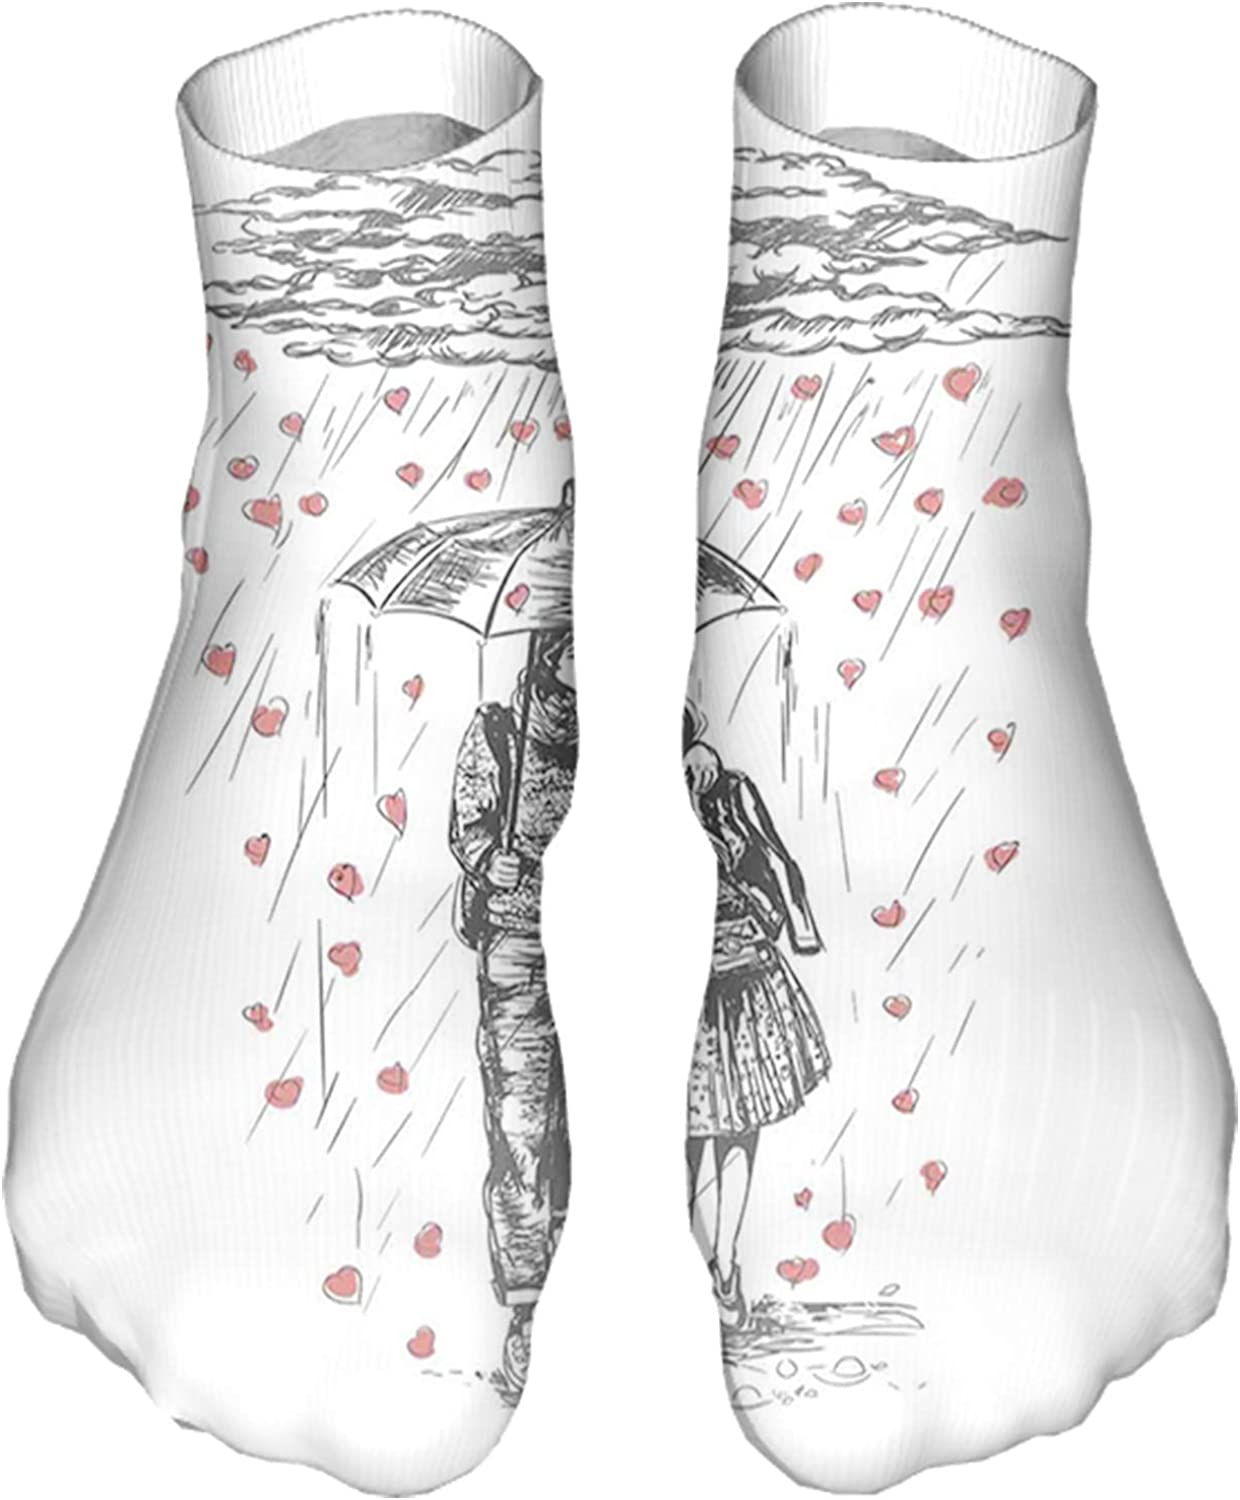 Women's Colorful Patterned Unisex Low Cut/No Show Socks,Couple Walking Under Heart Shape Rain Drops with and Umbrel